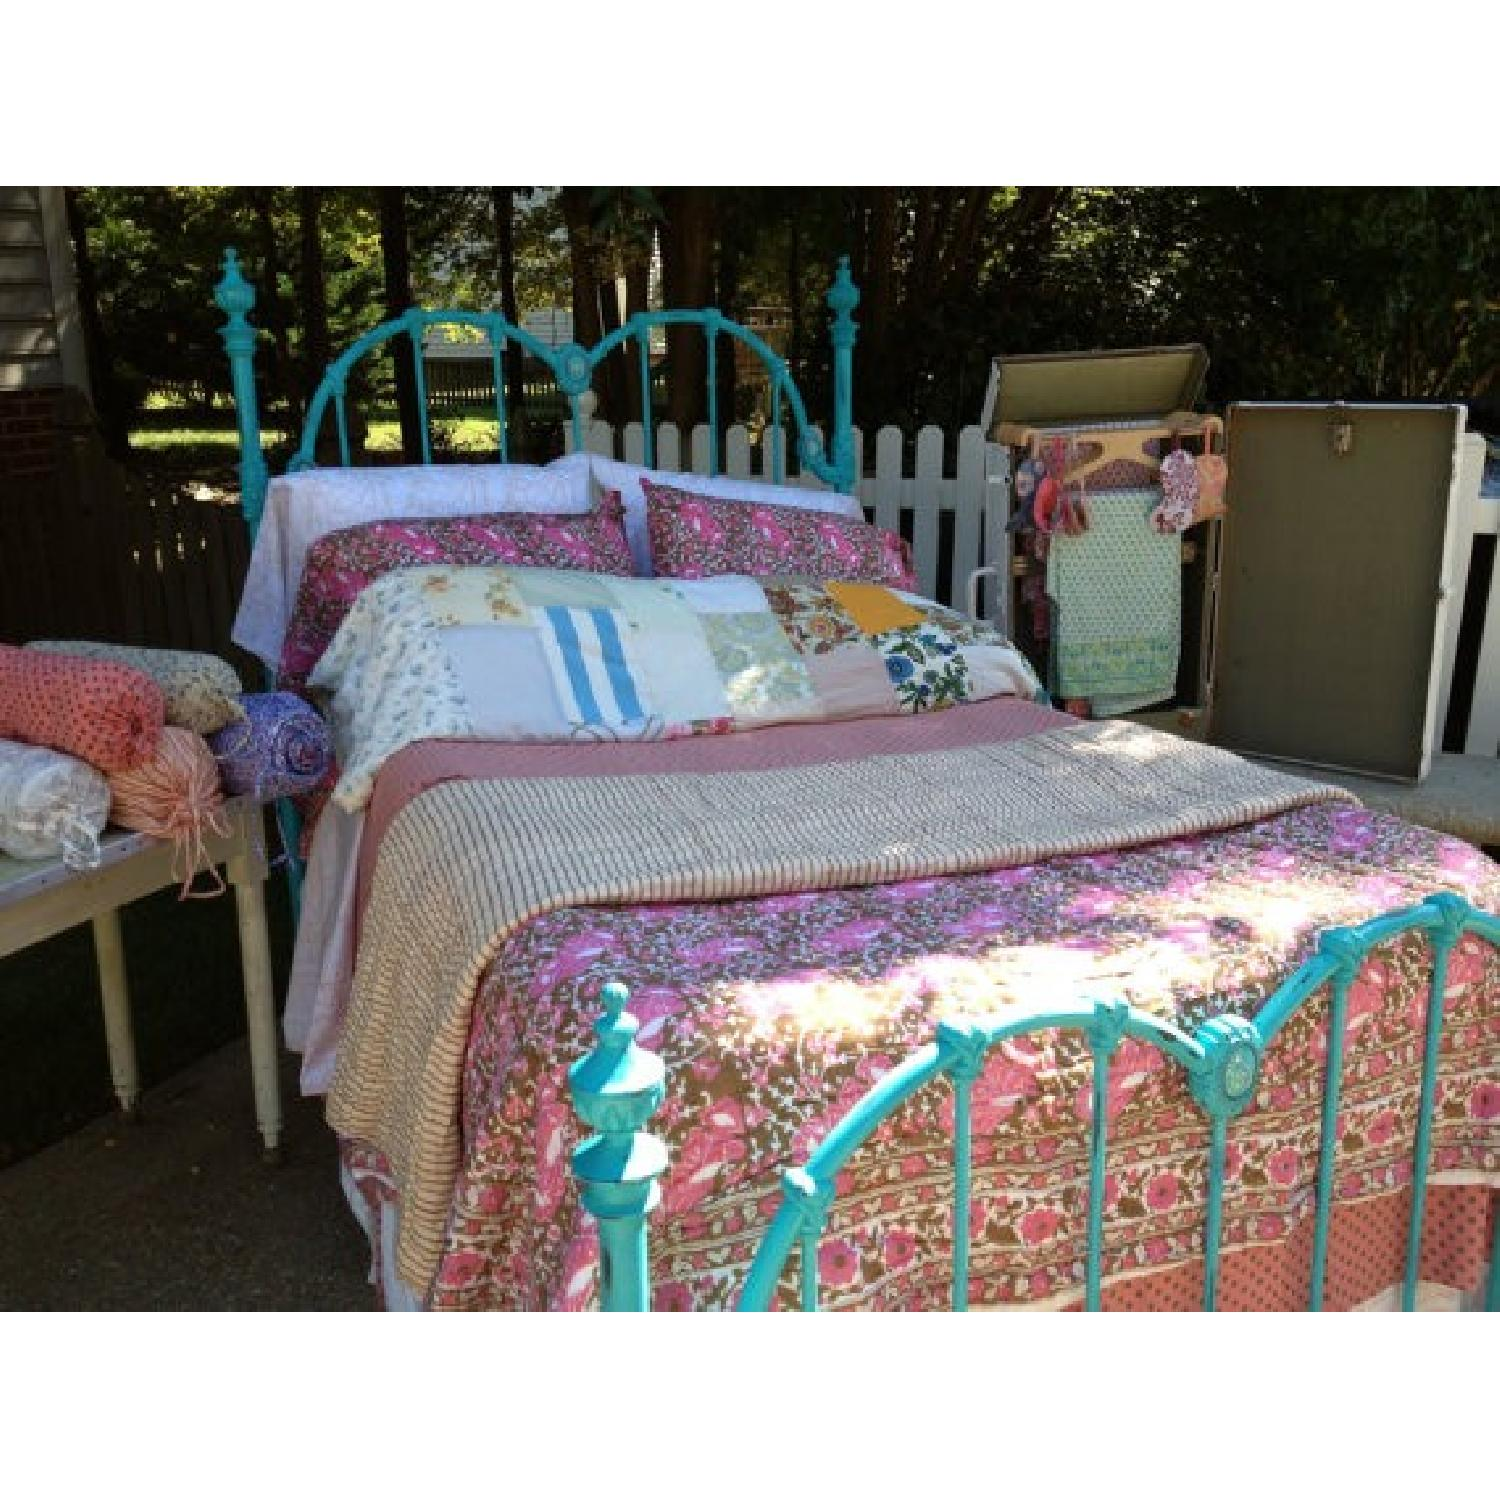 Full Sized Vintage Bed Frame - image-1